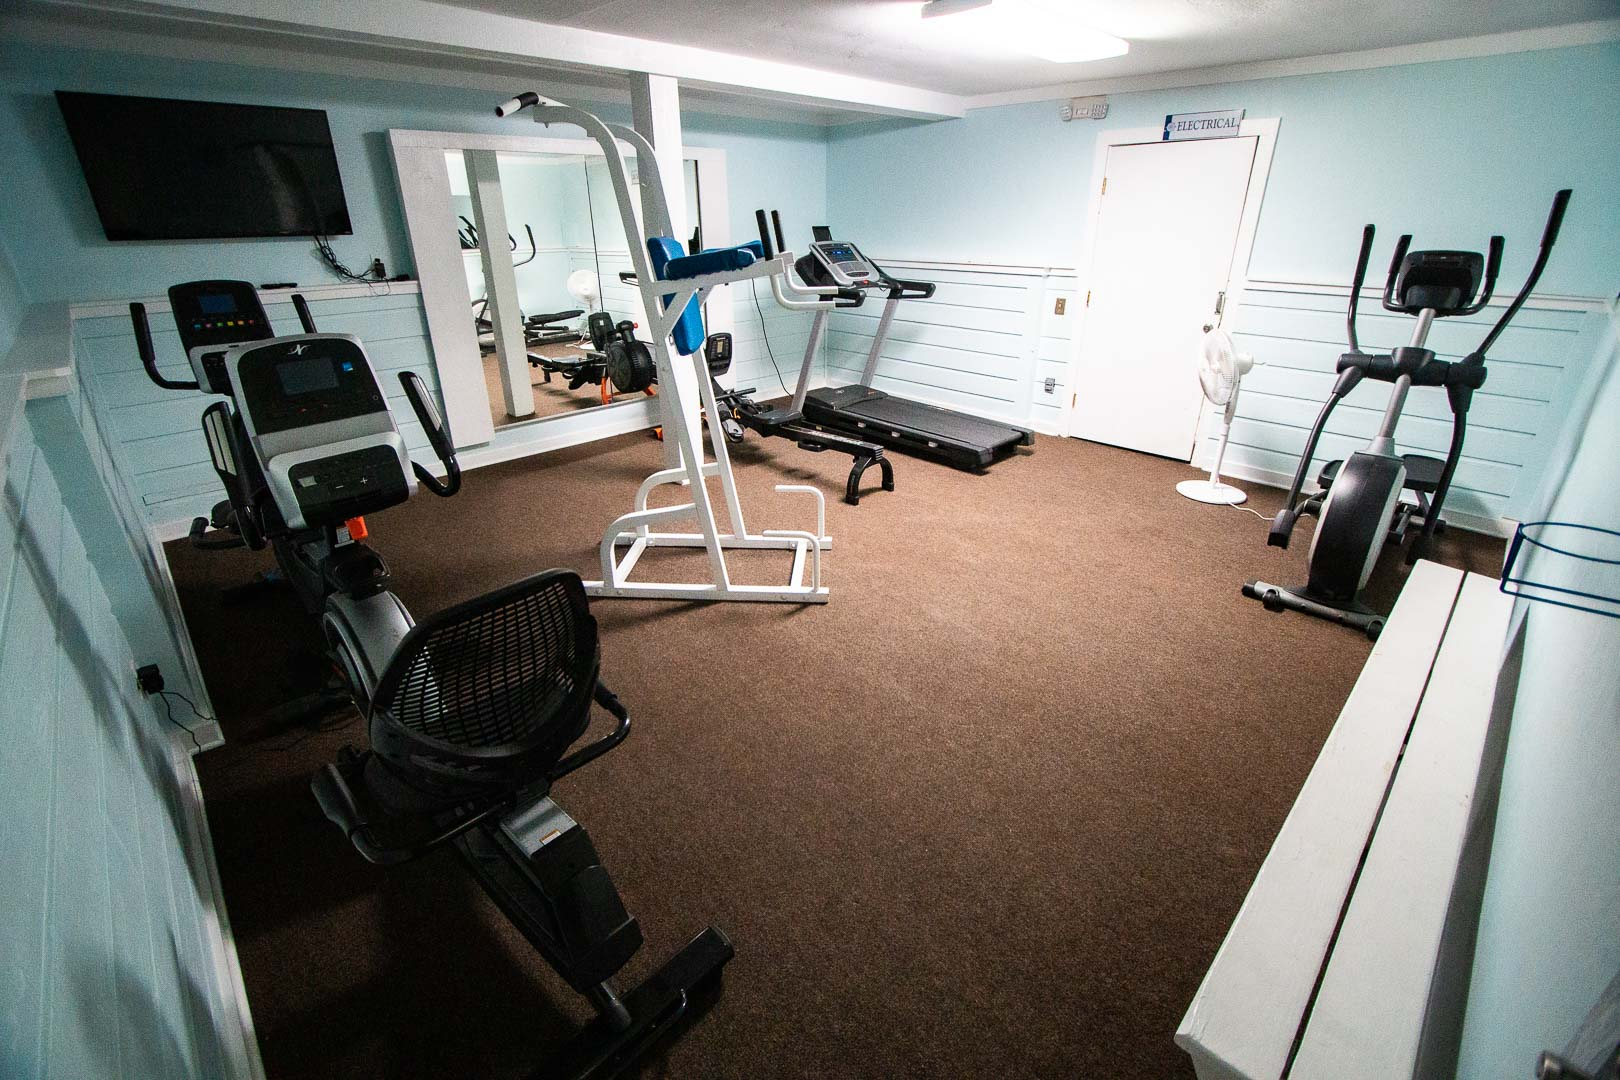 Indoor gym room at VRI's Barrier Island Station in North Carolina.